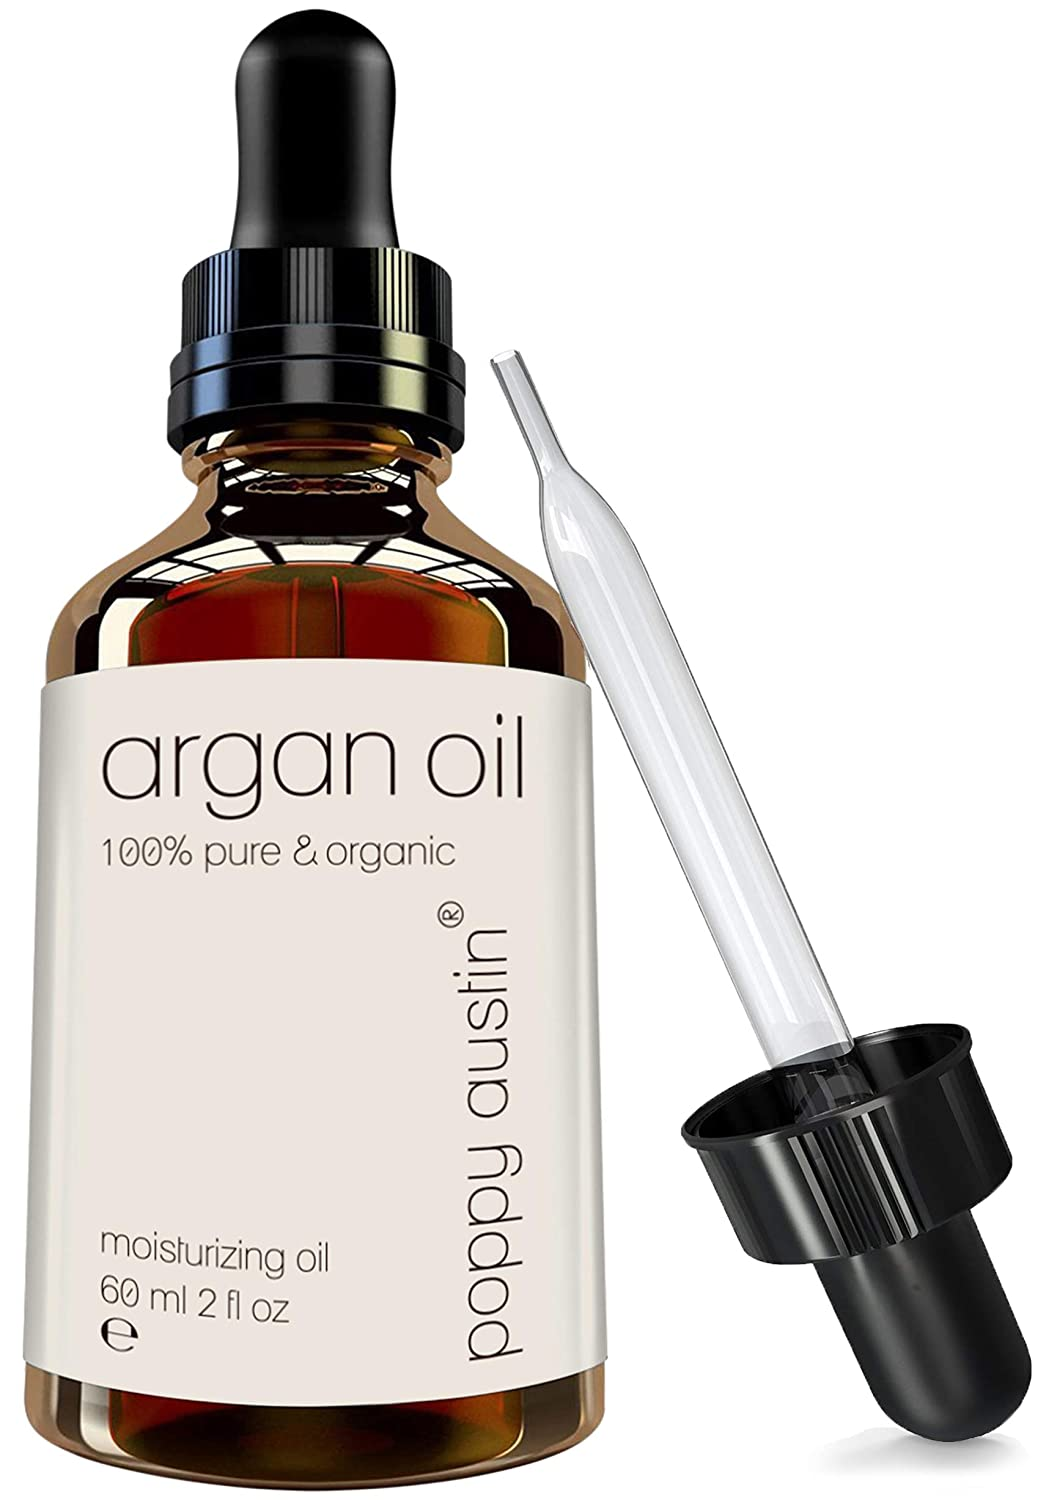 Top 10 Best Argan Oil For Hair Reviews in 2020 1